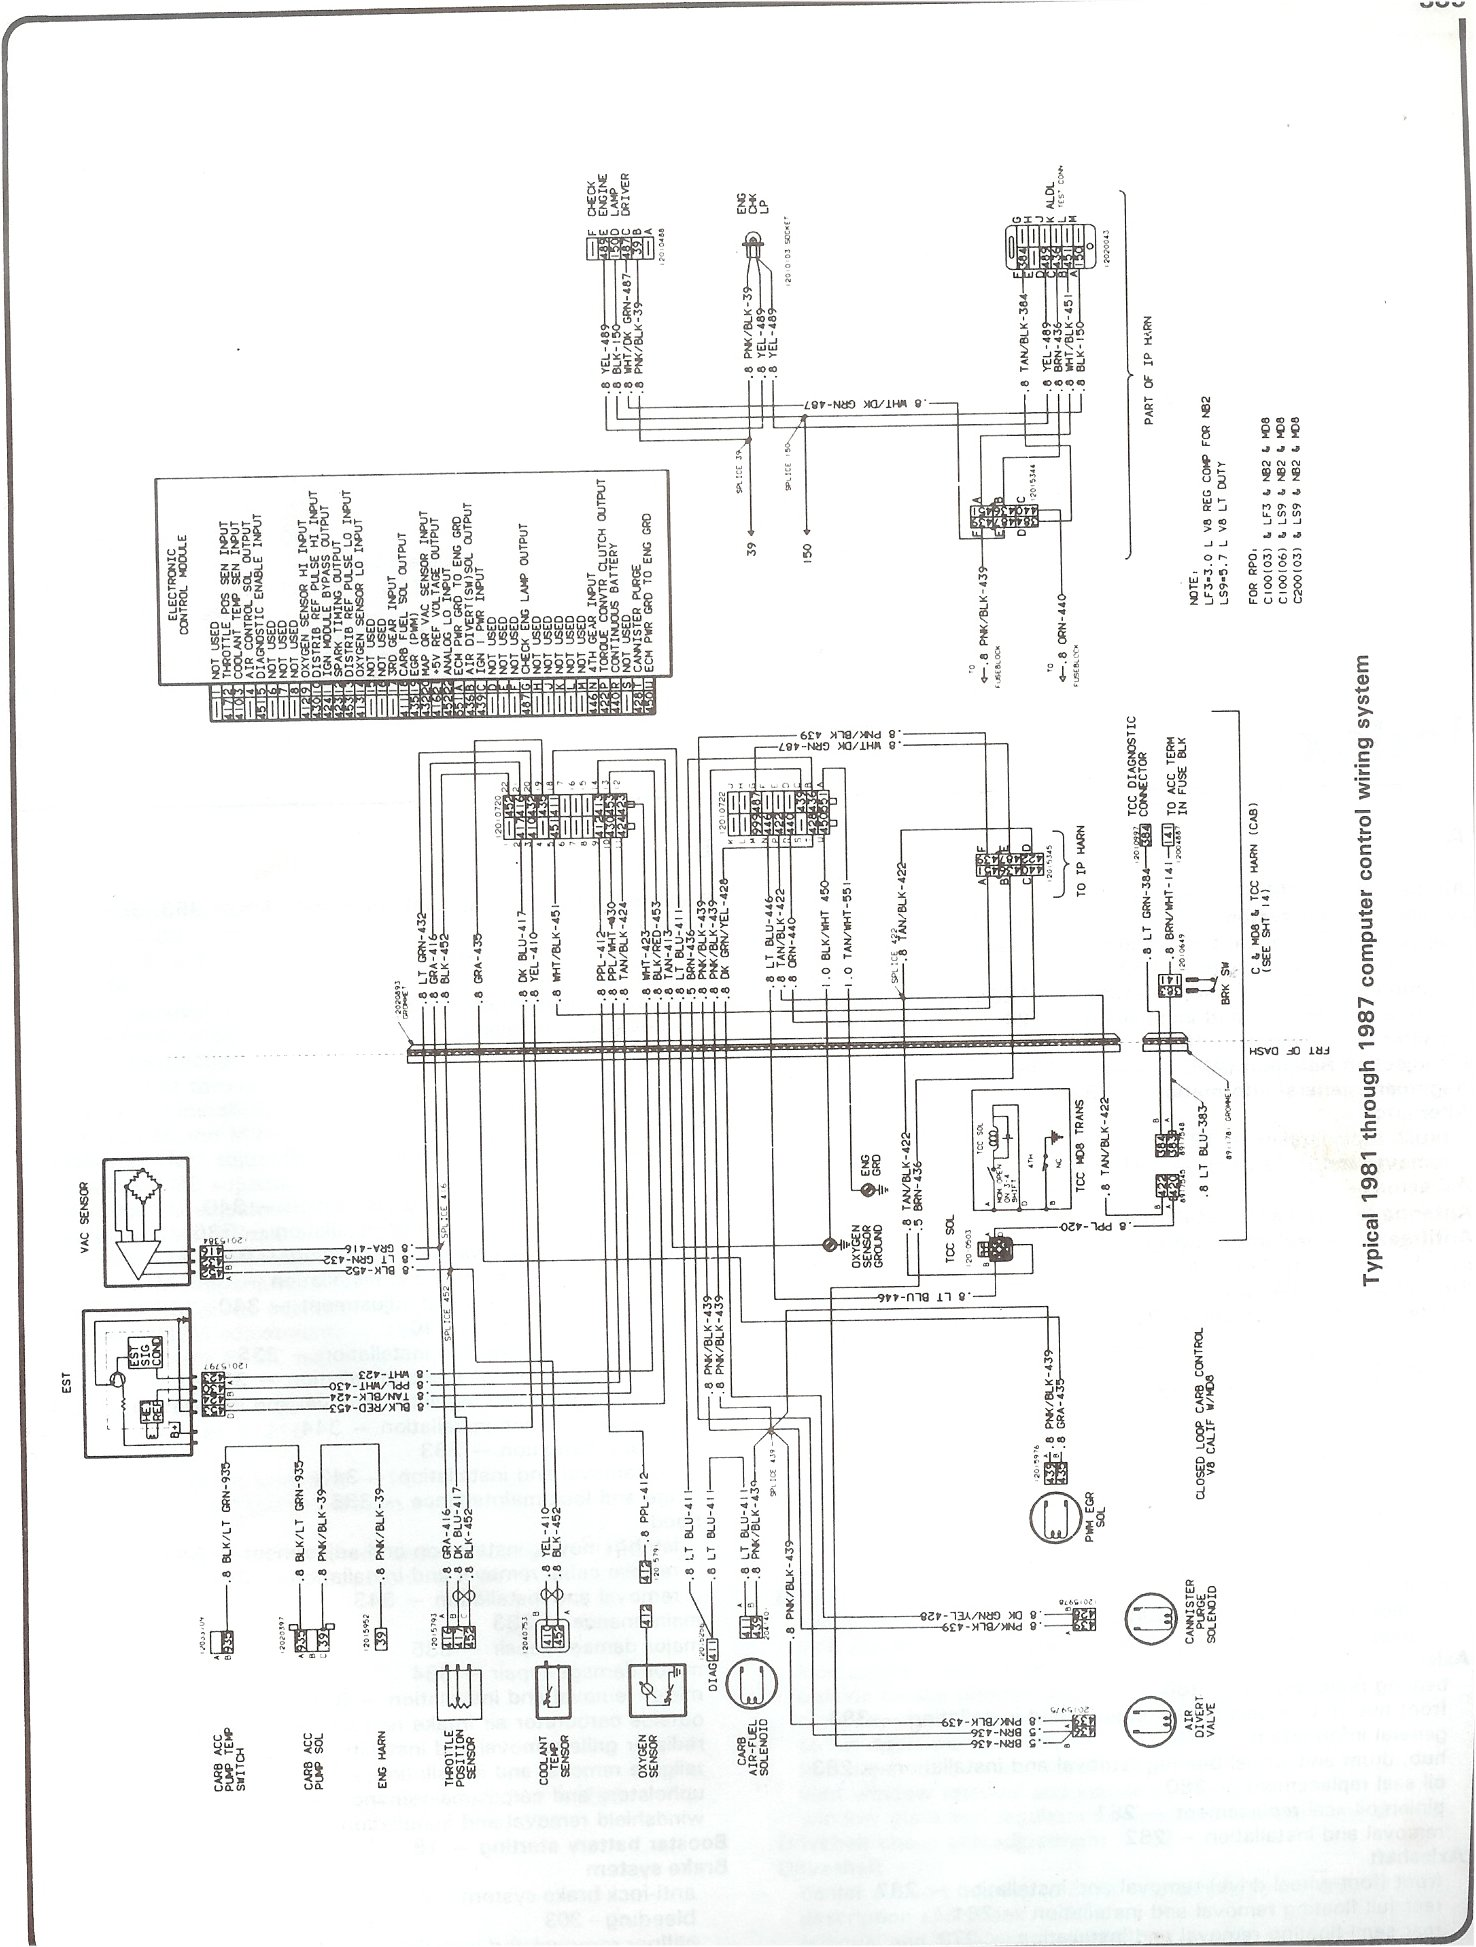 81 87_computer_control_wiring complete 73 87 wiring diagrams gm truck wiring harness at metegol.co